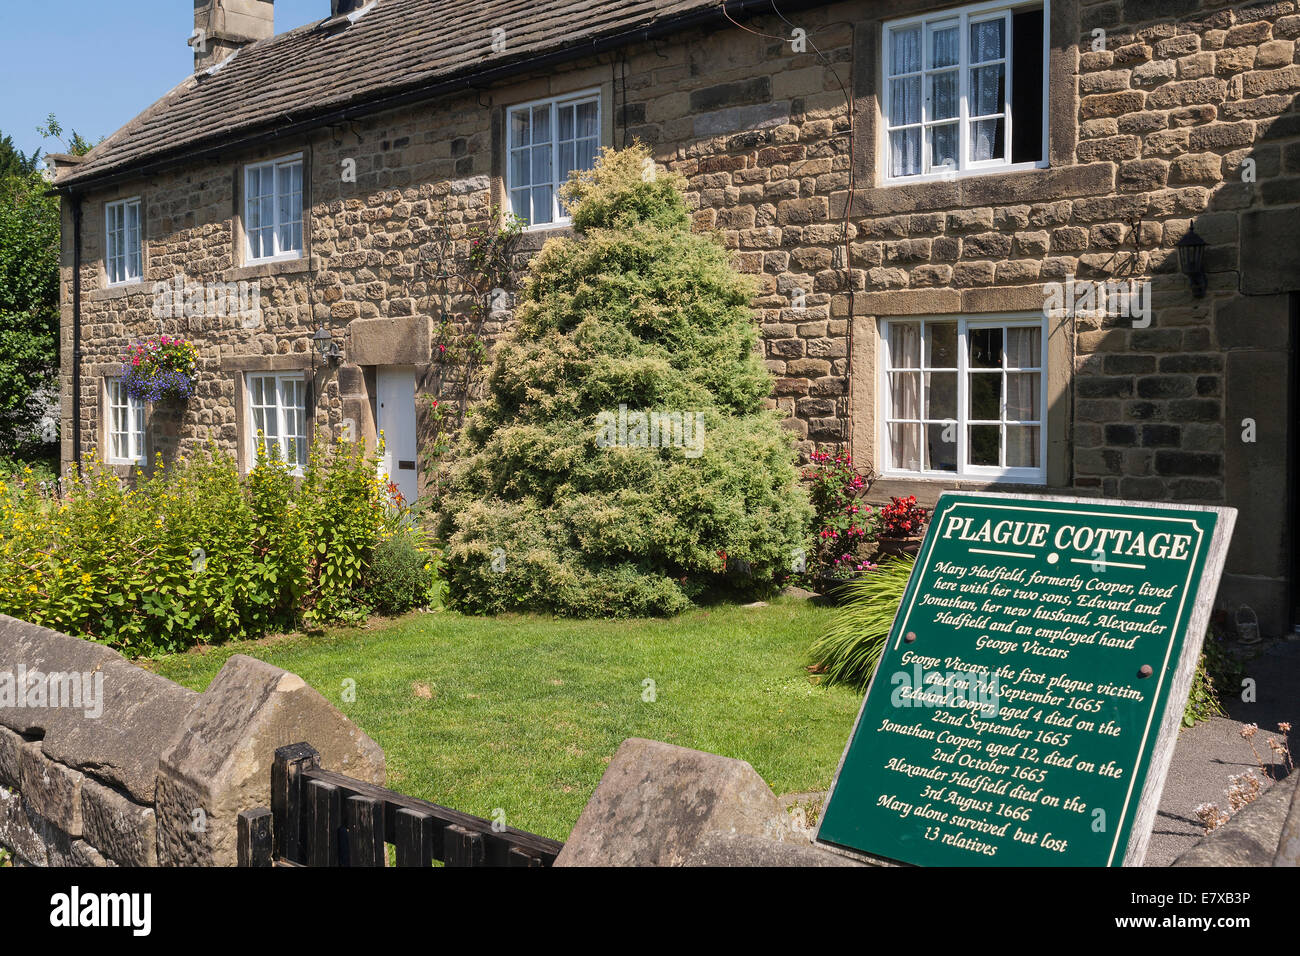 England Derbyshire, Eyam, Plague cottages - Stock Image